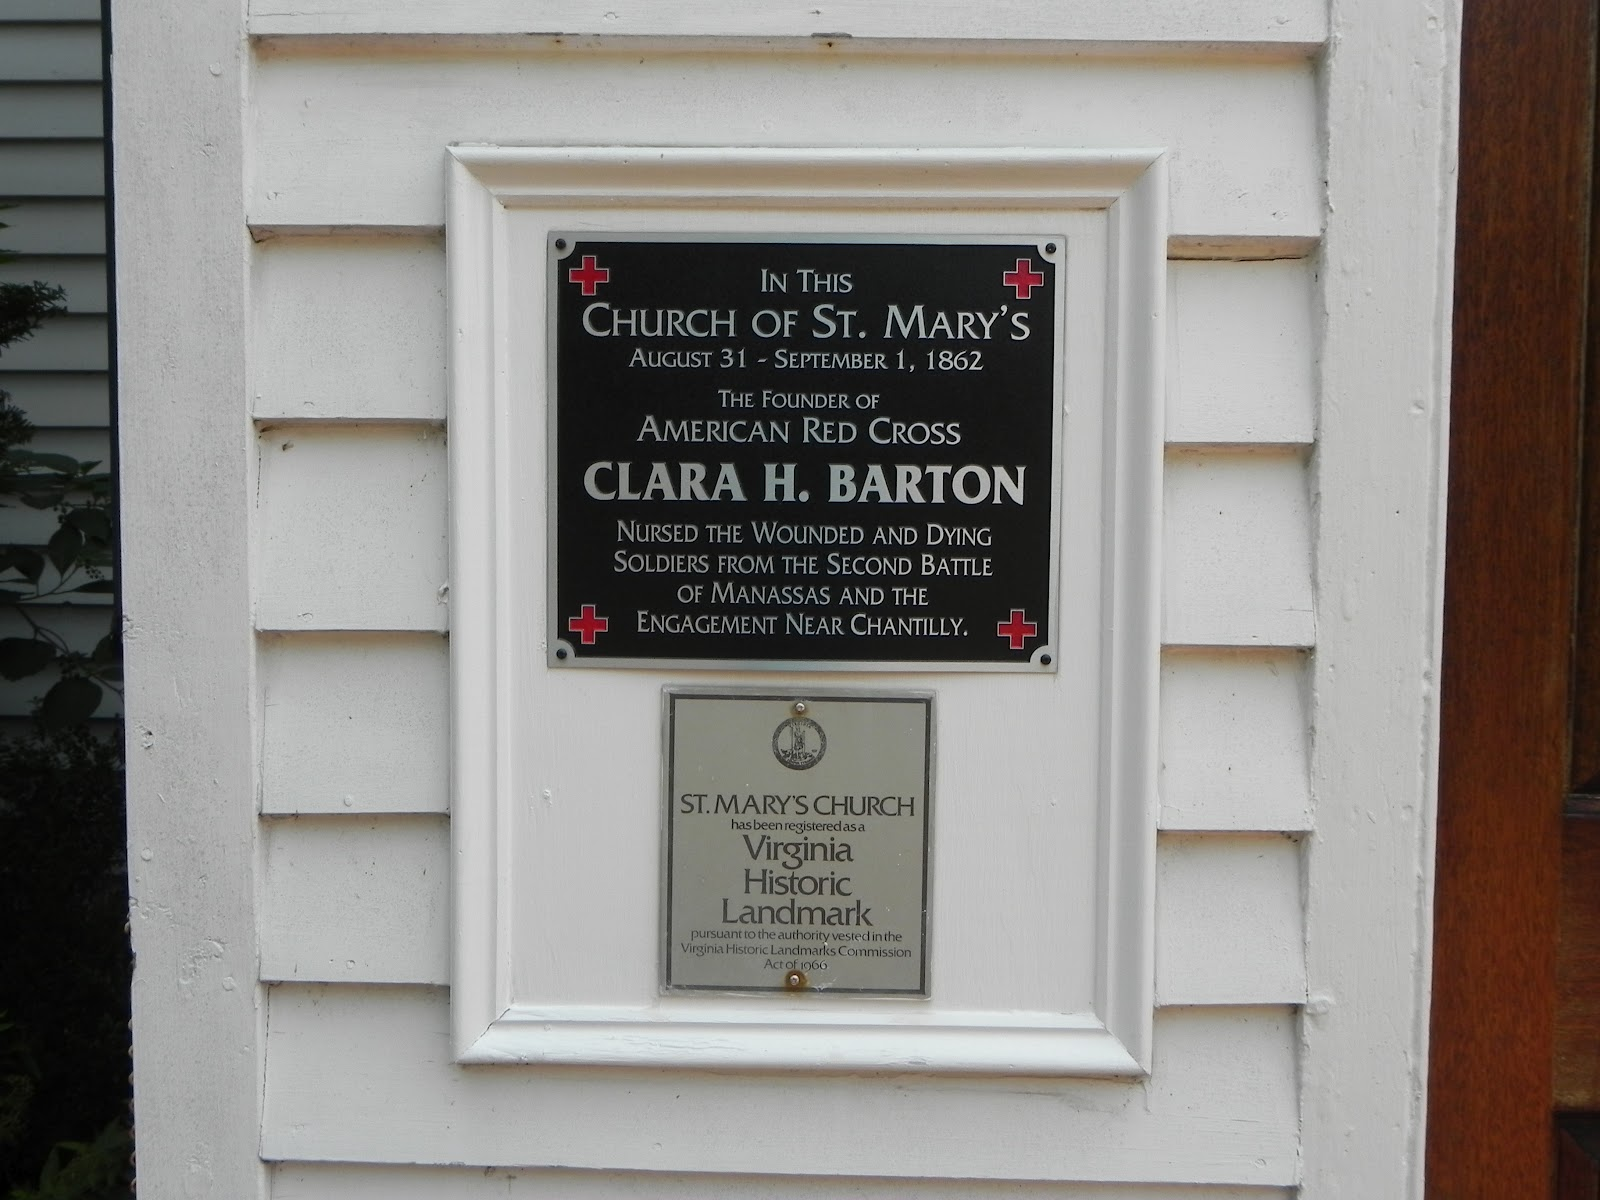 Clara Barton treated Union soldiers at this church, even after the Confederate army occupied the area